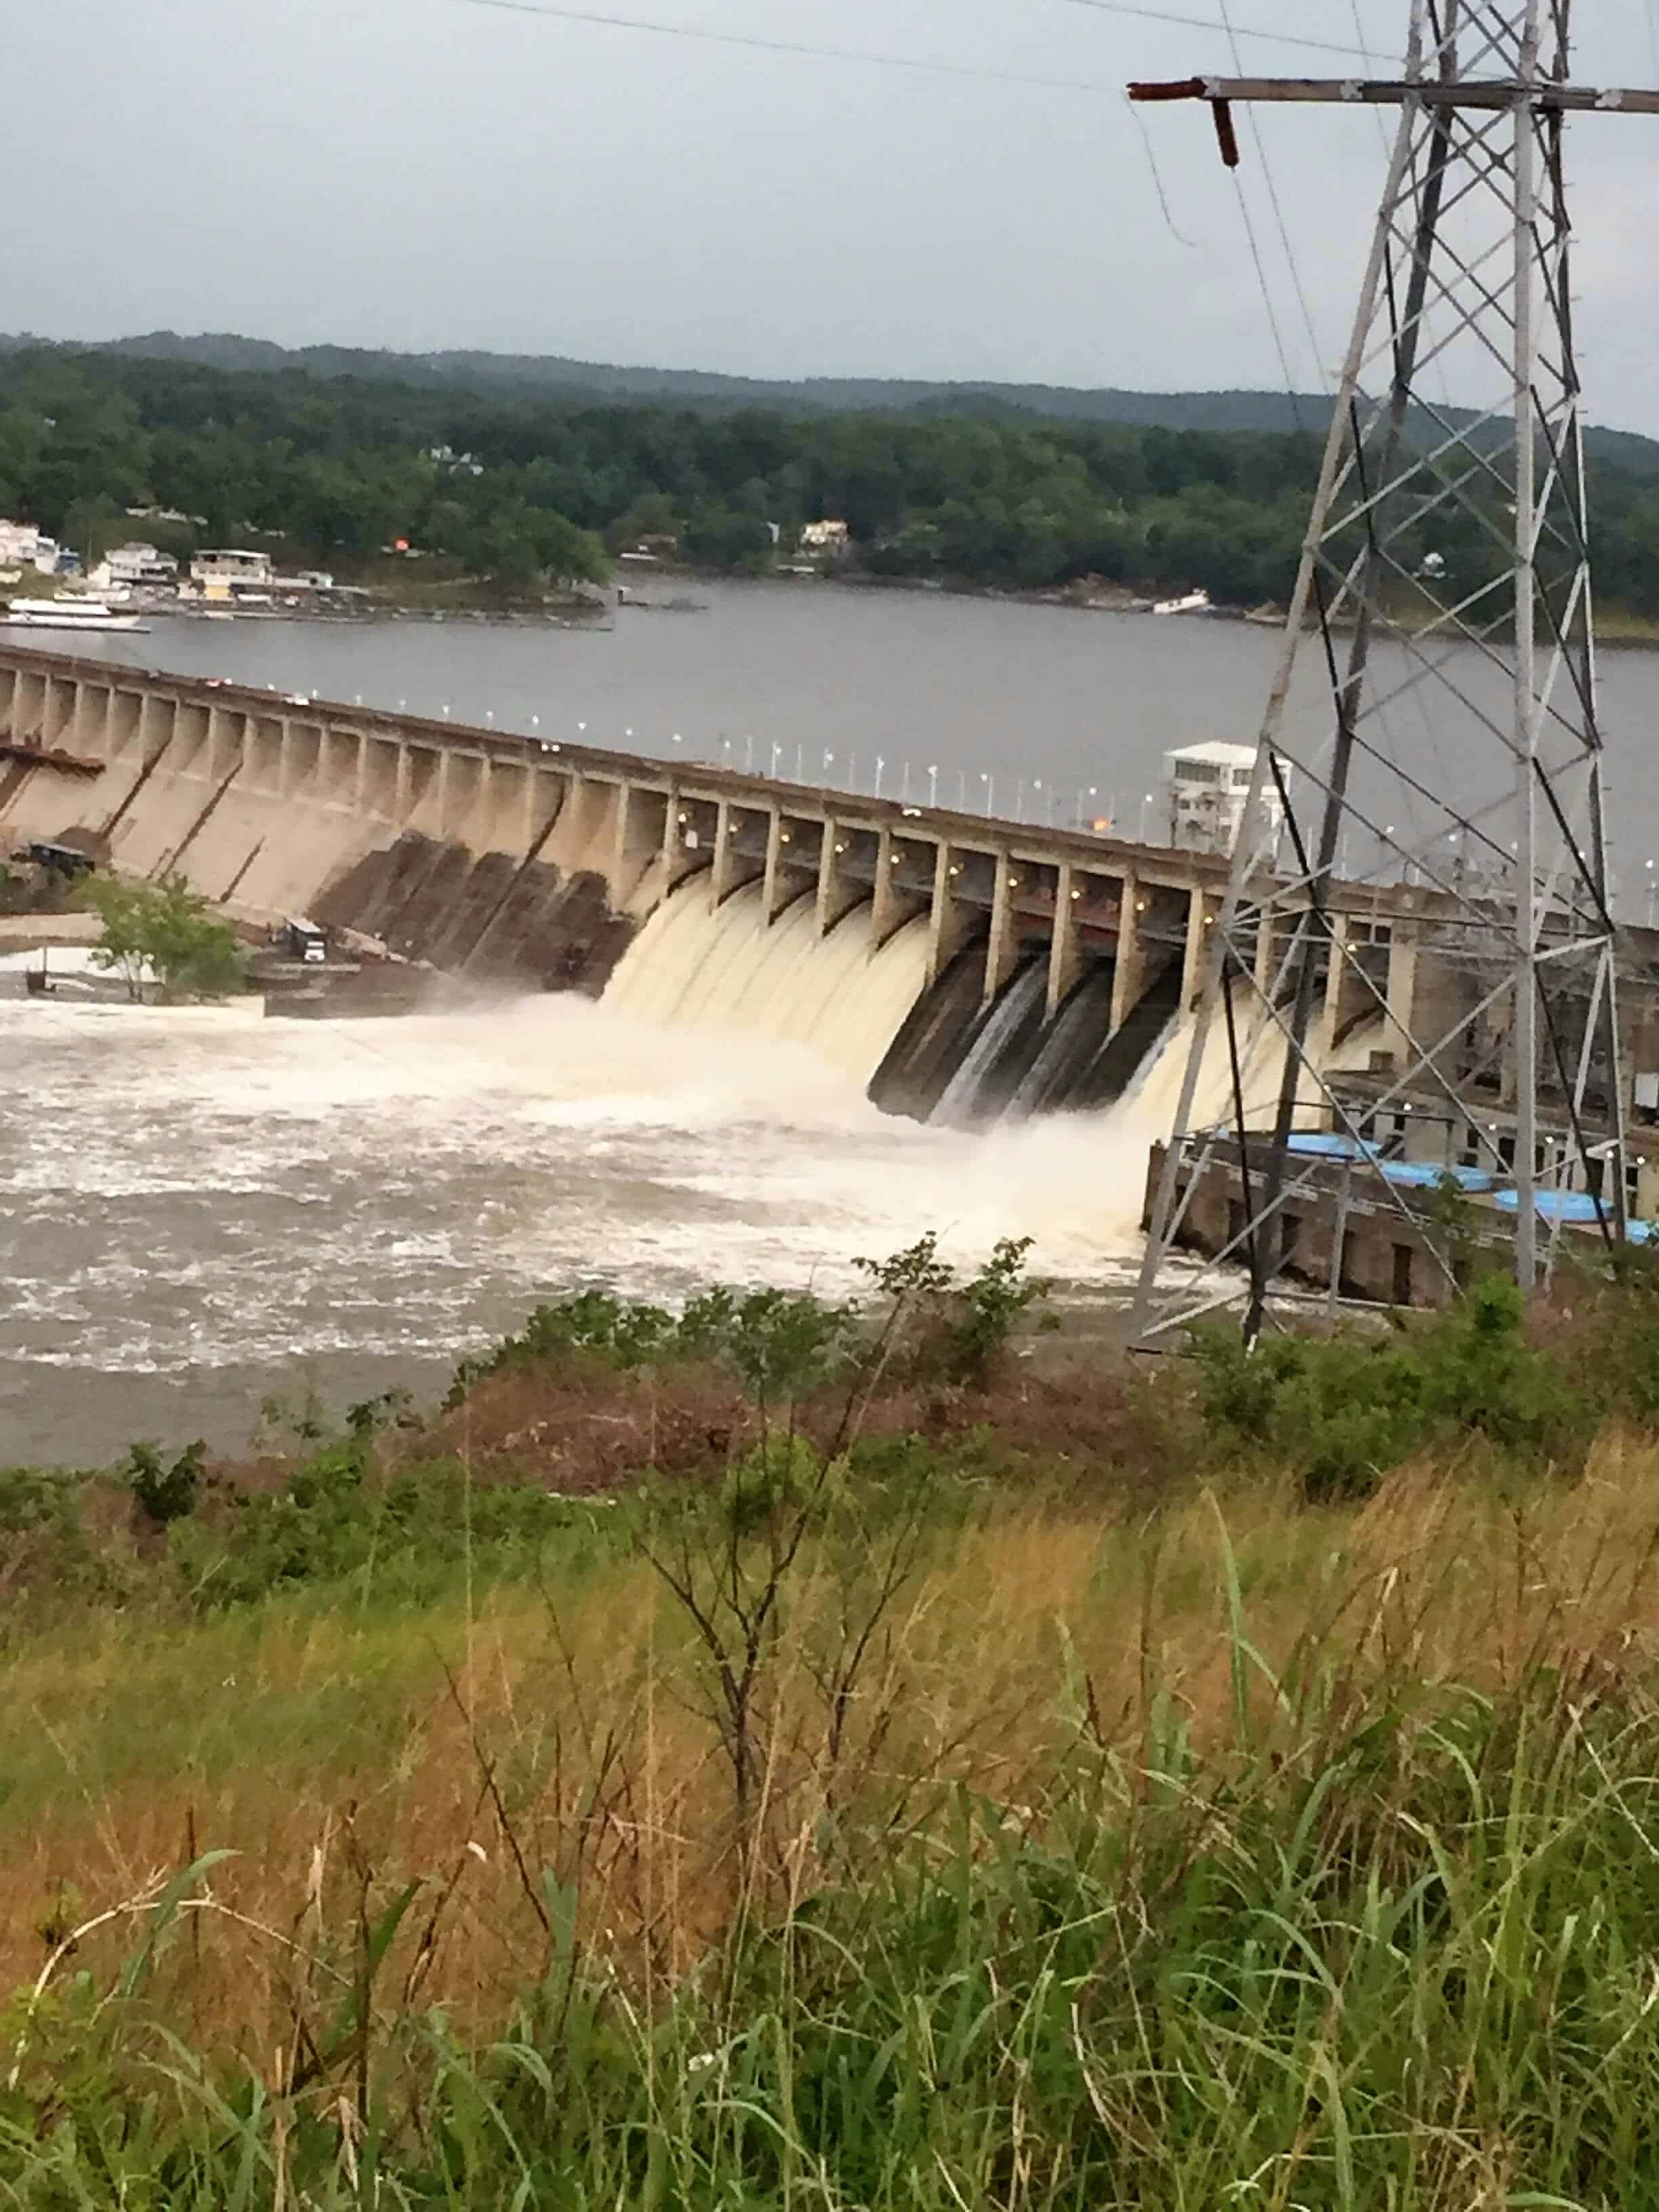 Bagnall Dam, Lake of the Ozarks, MO